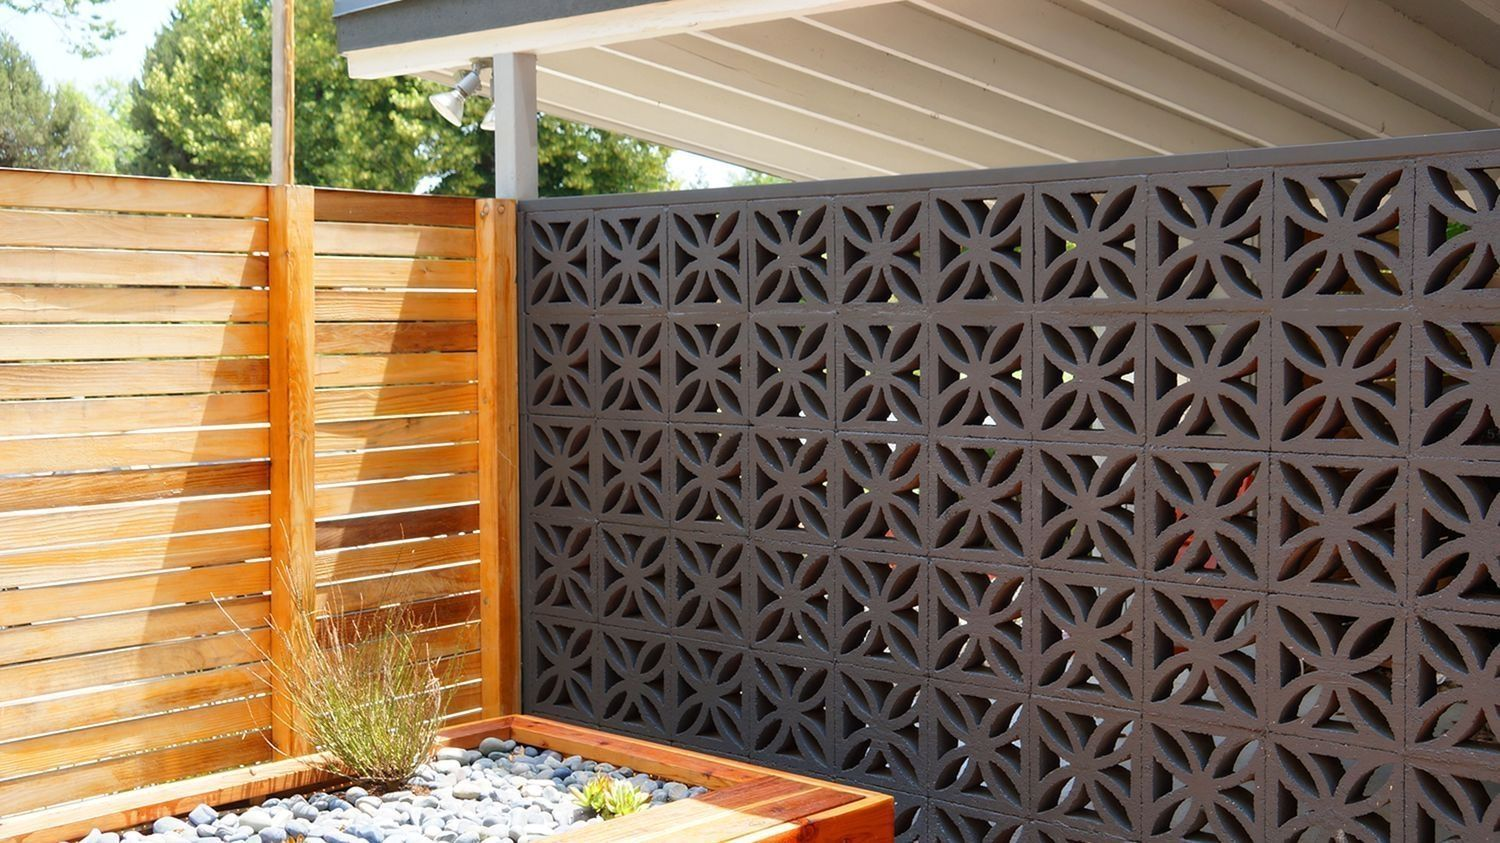 42 Catchy Breeze Block Ideas for Beautiful Home Style #gartenupcycling